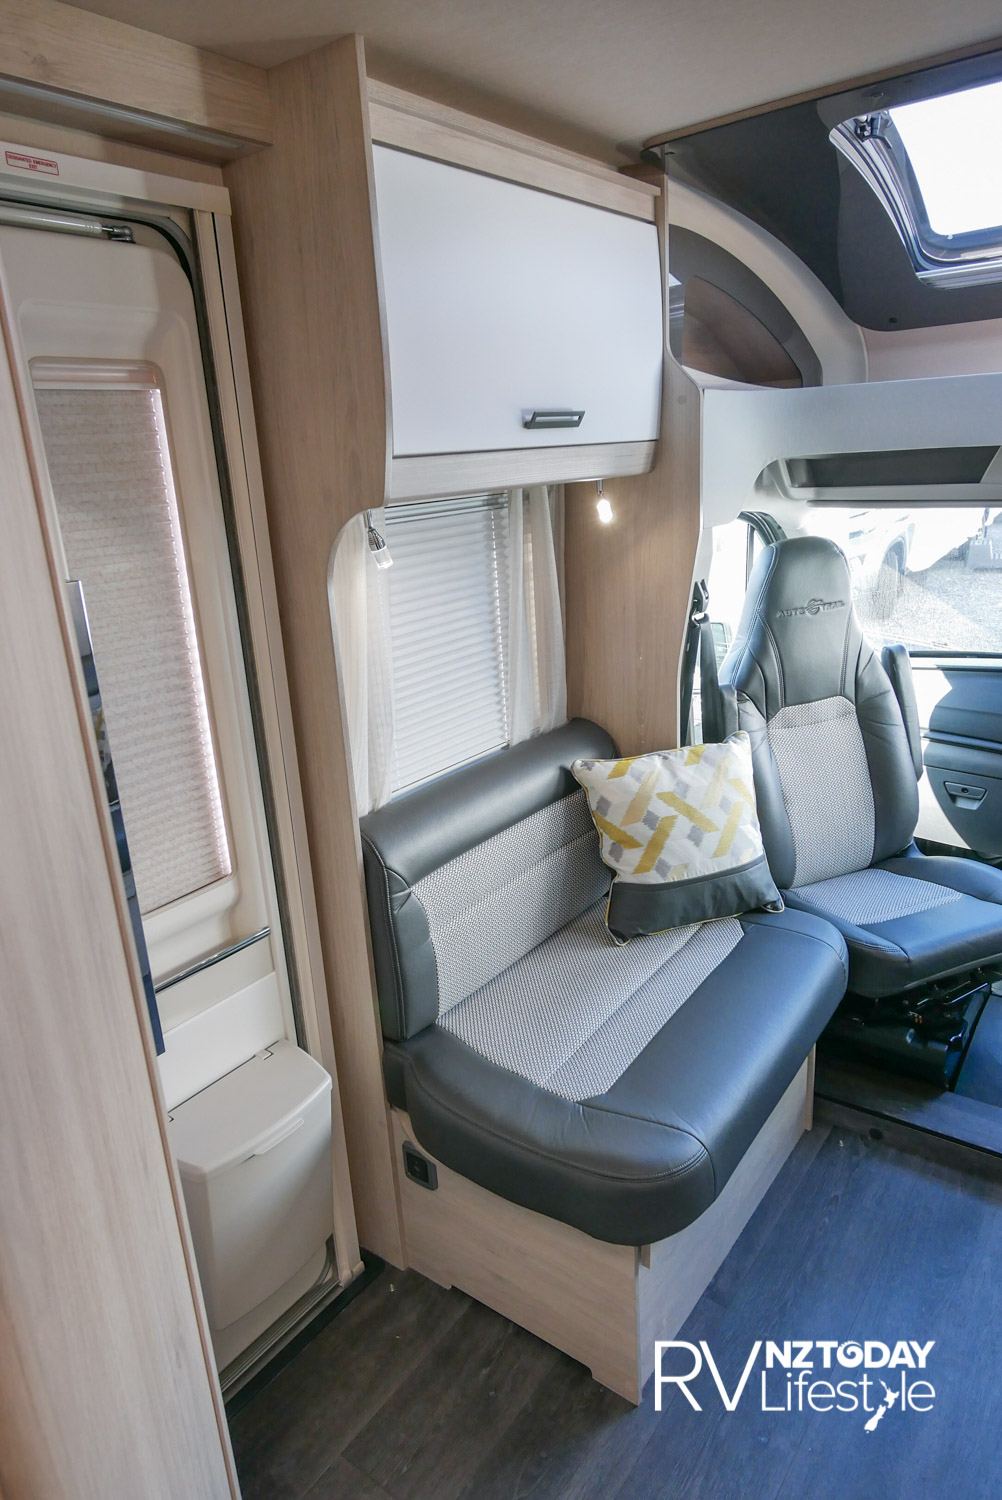 Habitation entry door is on the left behind the passenger for kerb-side entry. Side wall lounge seating with plenty of room for the removable table to go in – the only internal step is the small one into the cab. Cab Captain's seats that swivel and adjust for personal comfort adding more entertainment seating